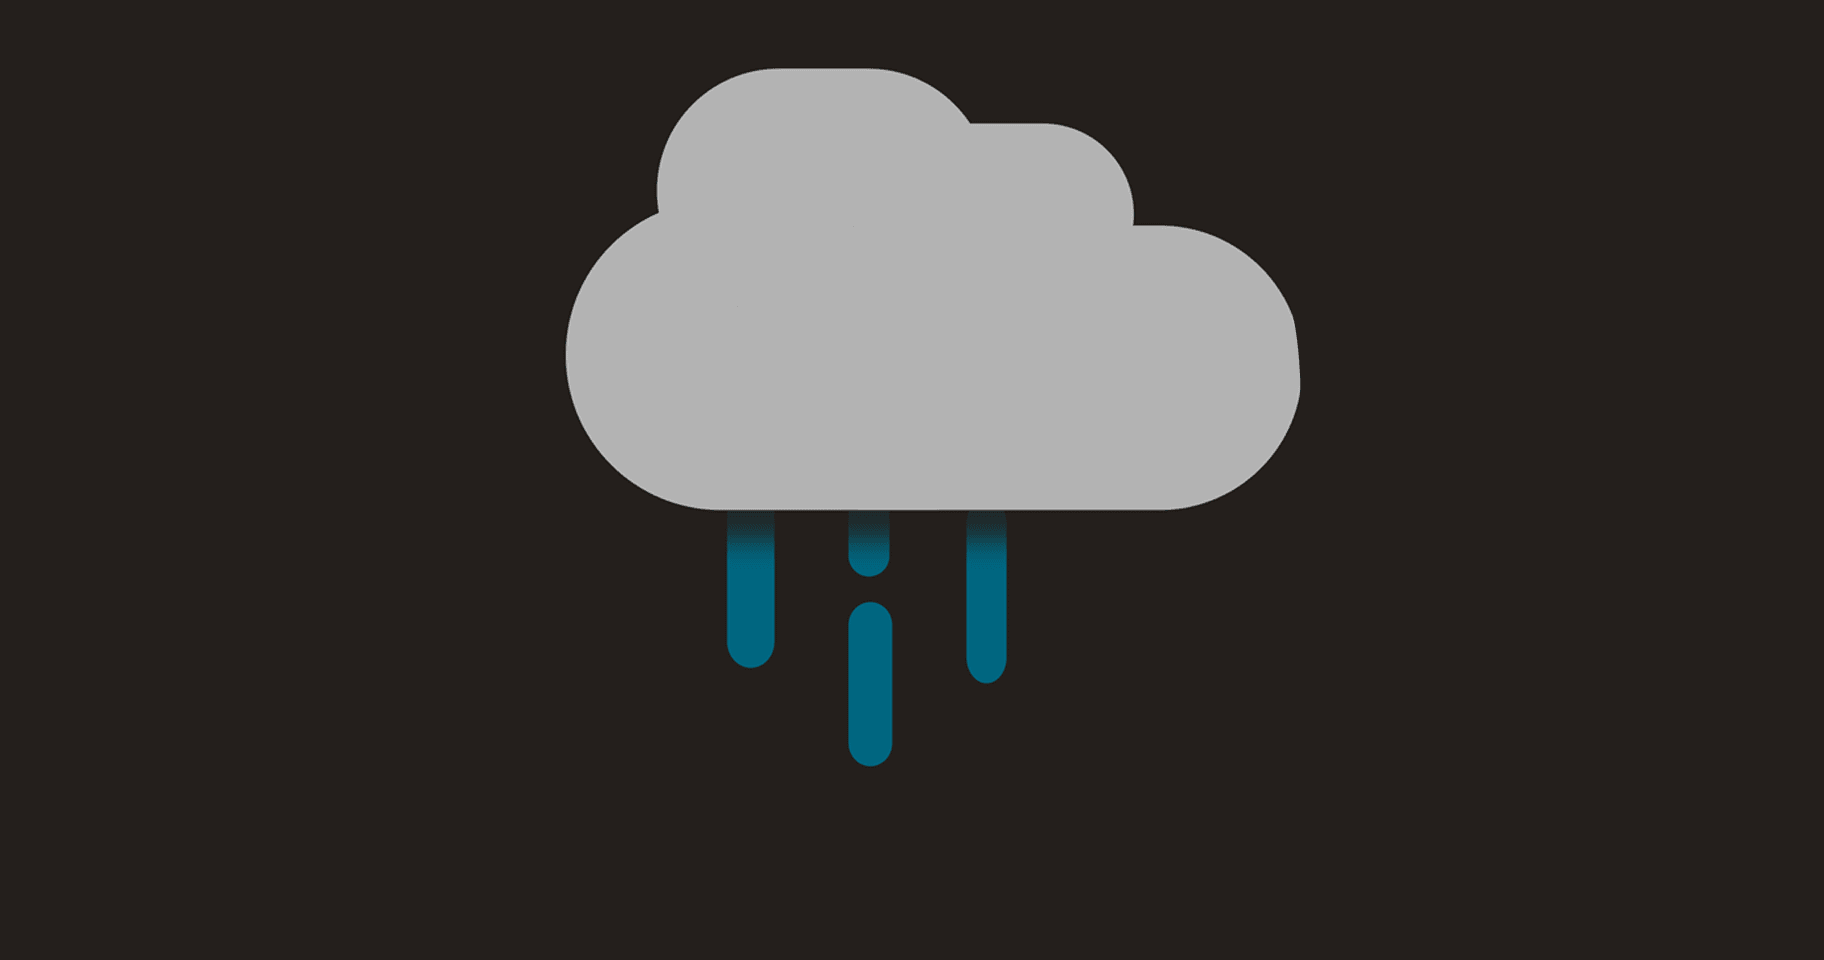 Weather apps are secretly selling your location data to the highest bidder